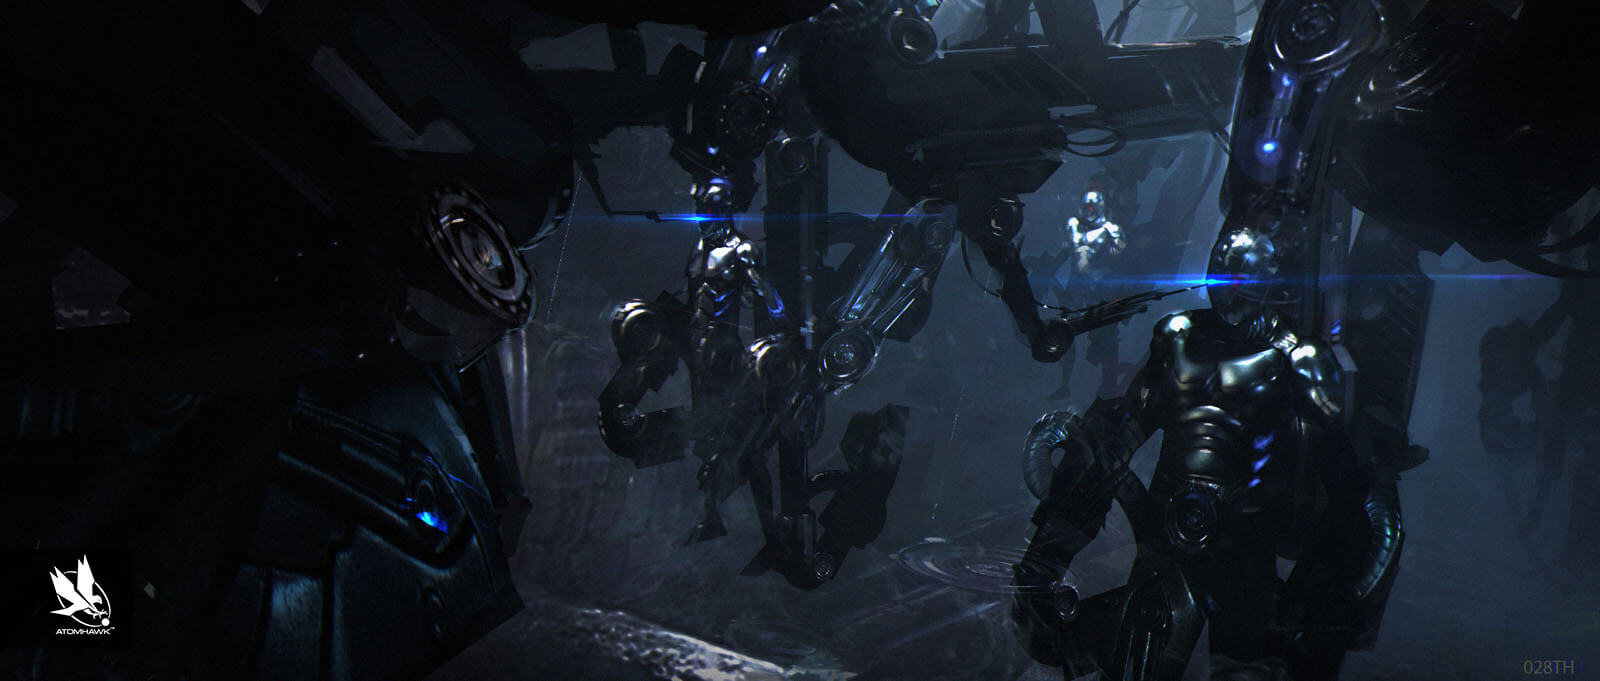 Avengers Age Of Ultron - Concept Art and Environment Design - Fortress Factory Level 2